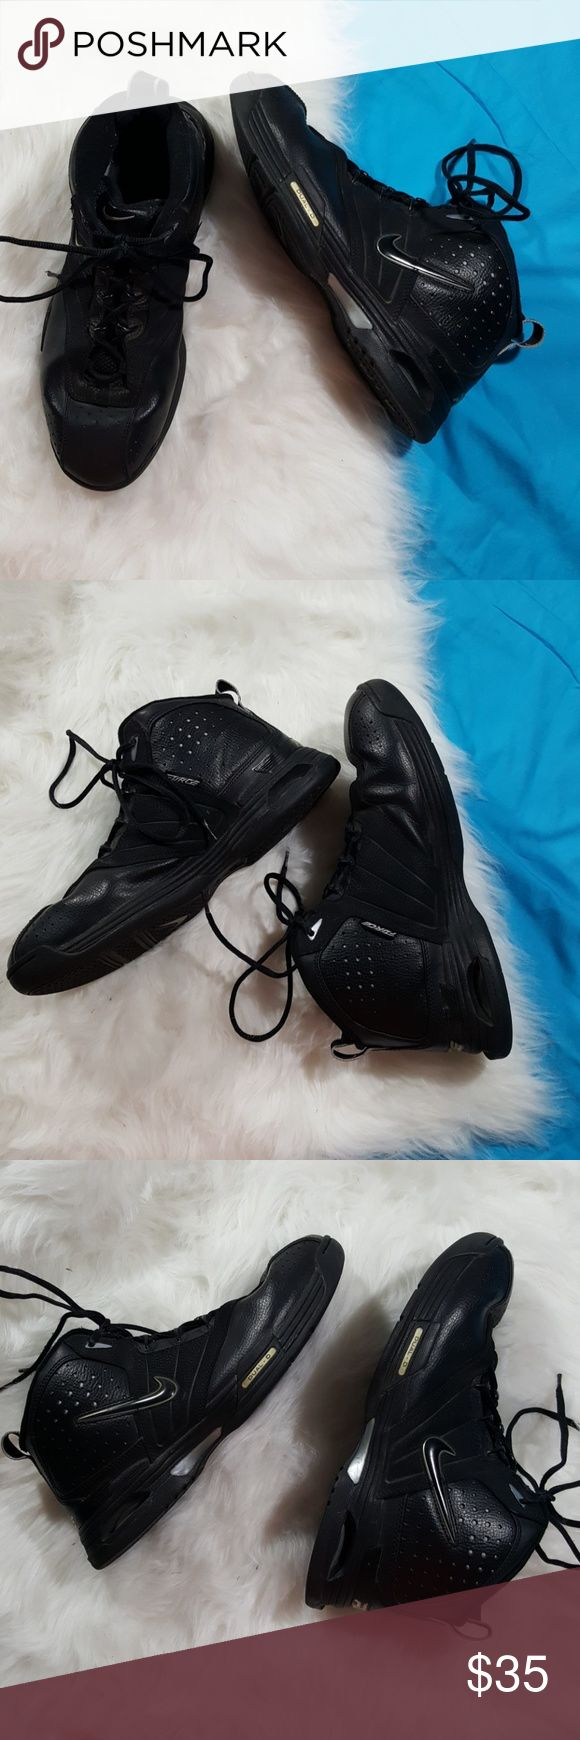 11 EUC mens high top nike AF1 Excellent used condition all black high top men's Nike Air Force Ones no rips stains or tears little crack as pictured on shoelace otherwise great condition Nike Shoes Sneakers